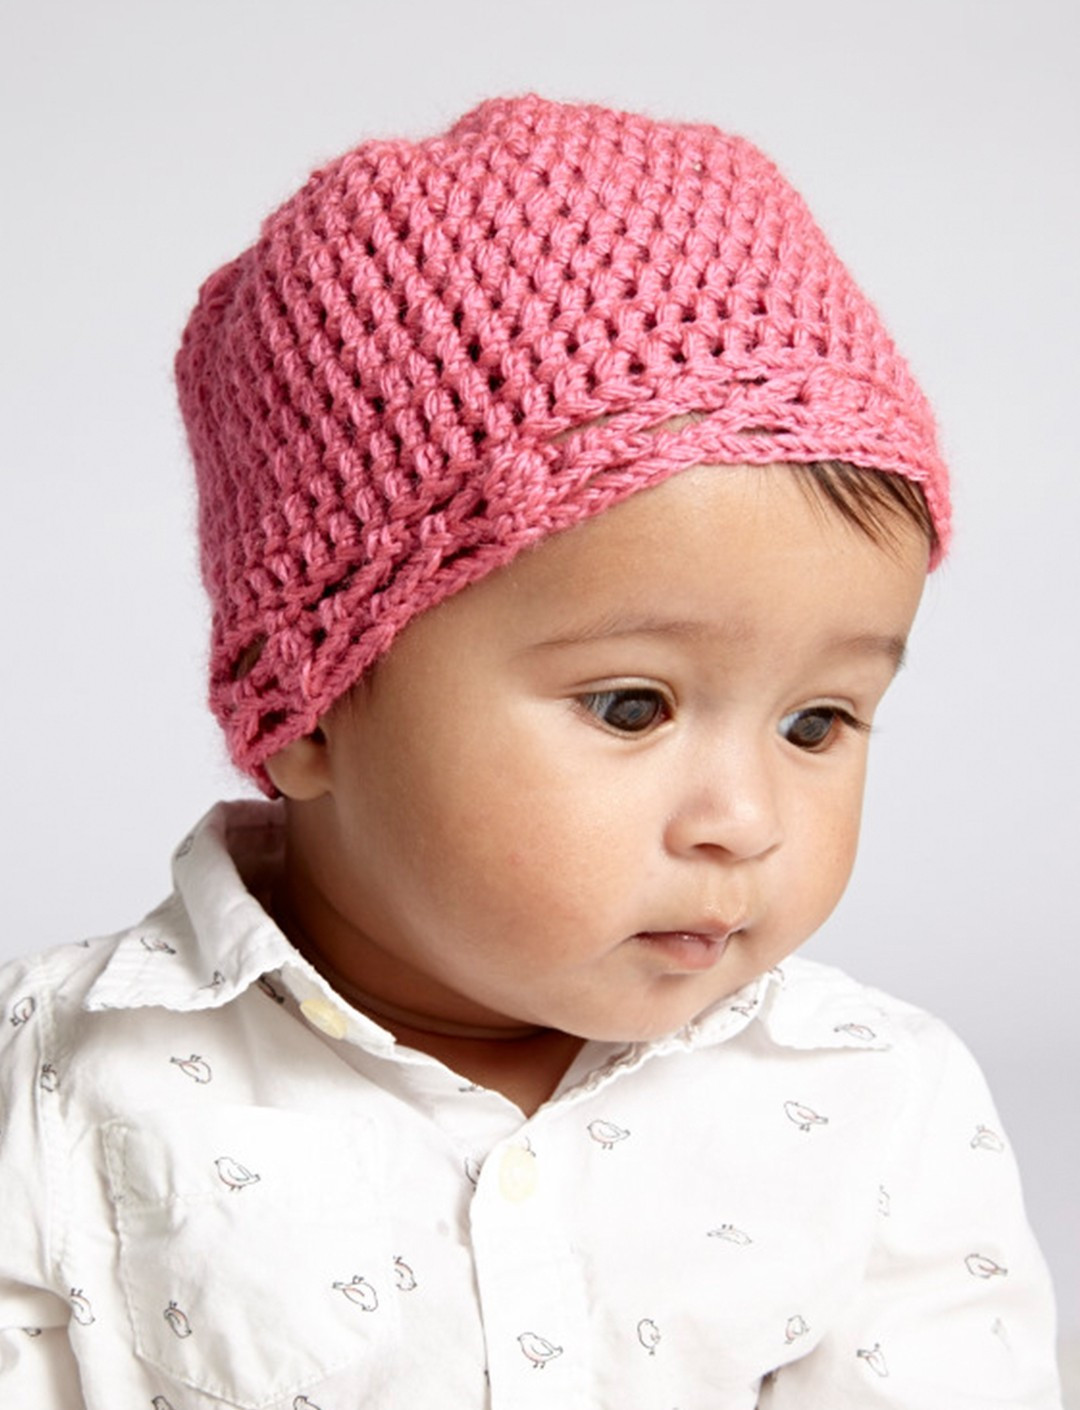 Best Of Bernat Crochet Baby Hat Crochet Pattern Free Crochet Infant Hat Patterns Of Contemporary 50 Models Free Crochet Infant Hat Patterns